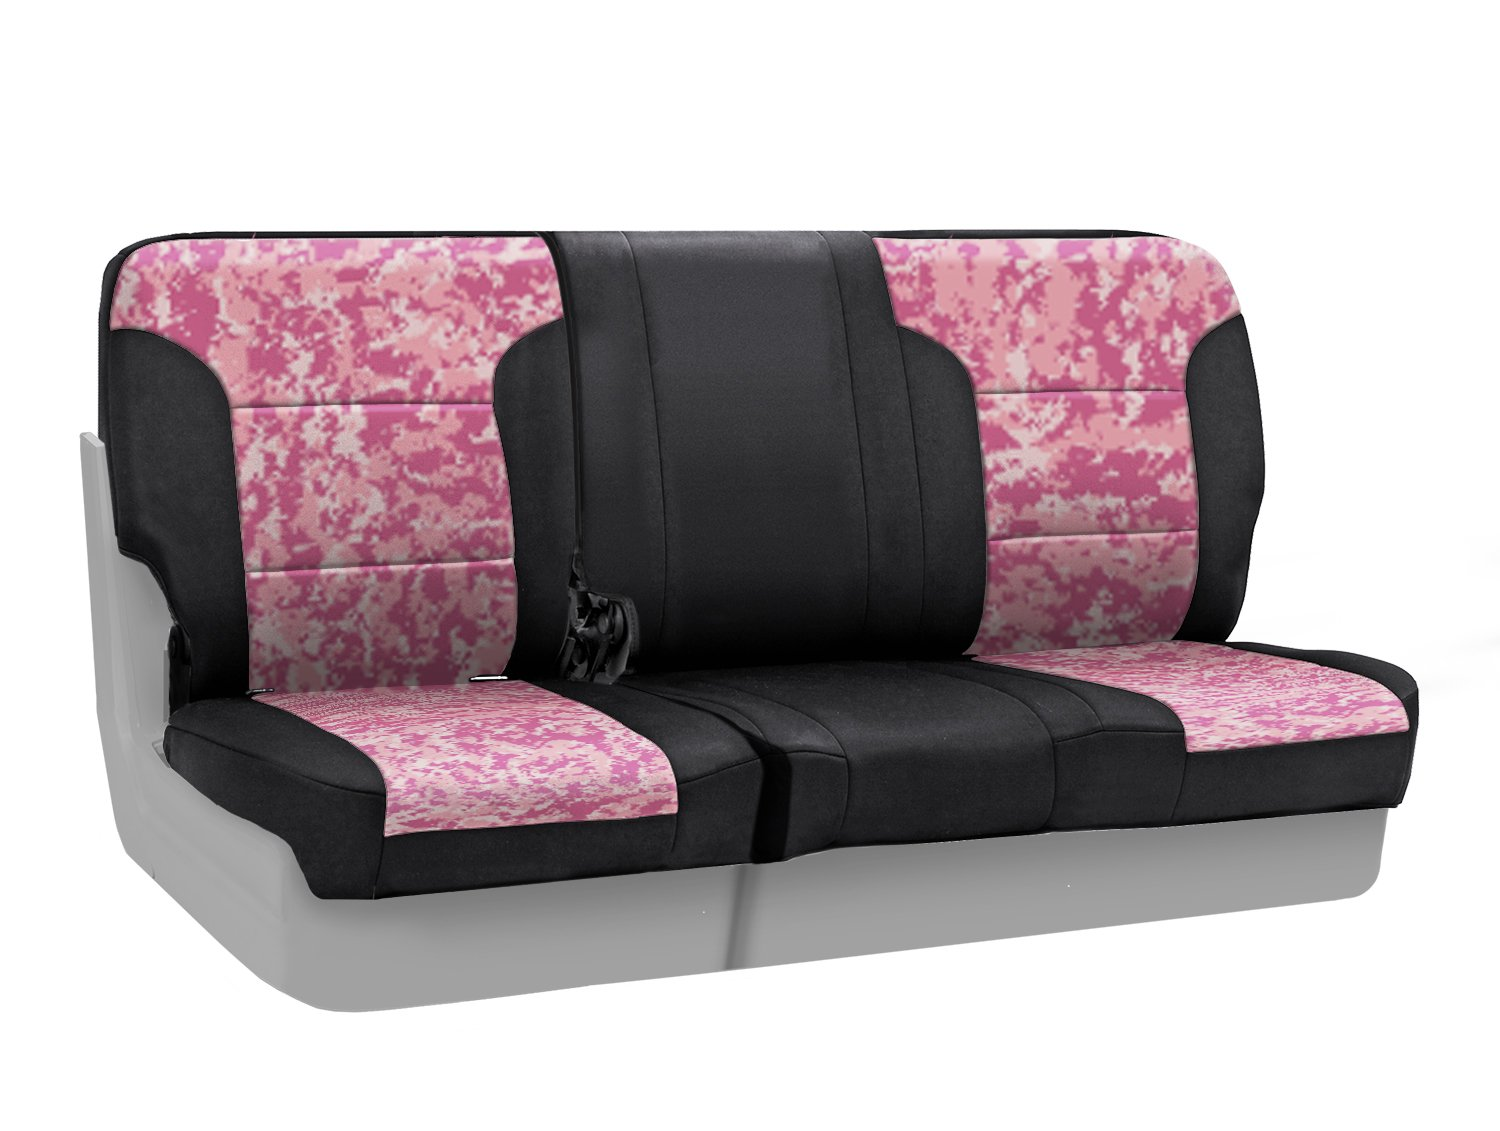 Coverking Center 60/40 Bench Custom Fit Seat Cover for Select Toyota Sequoia Models - Neosupreme (Digital Pink Camo with Black Sides) coverking front 50 50 bucket custom fit seat cover for select chevrolet monte carlo models genuine leather black